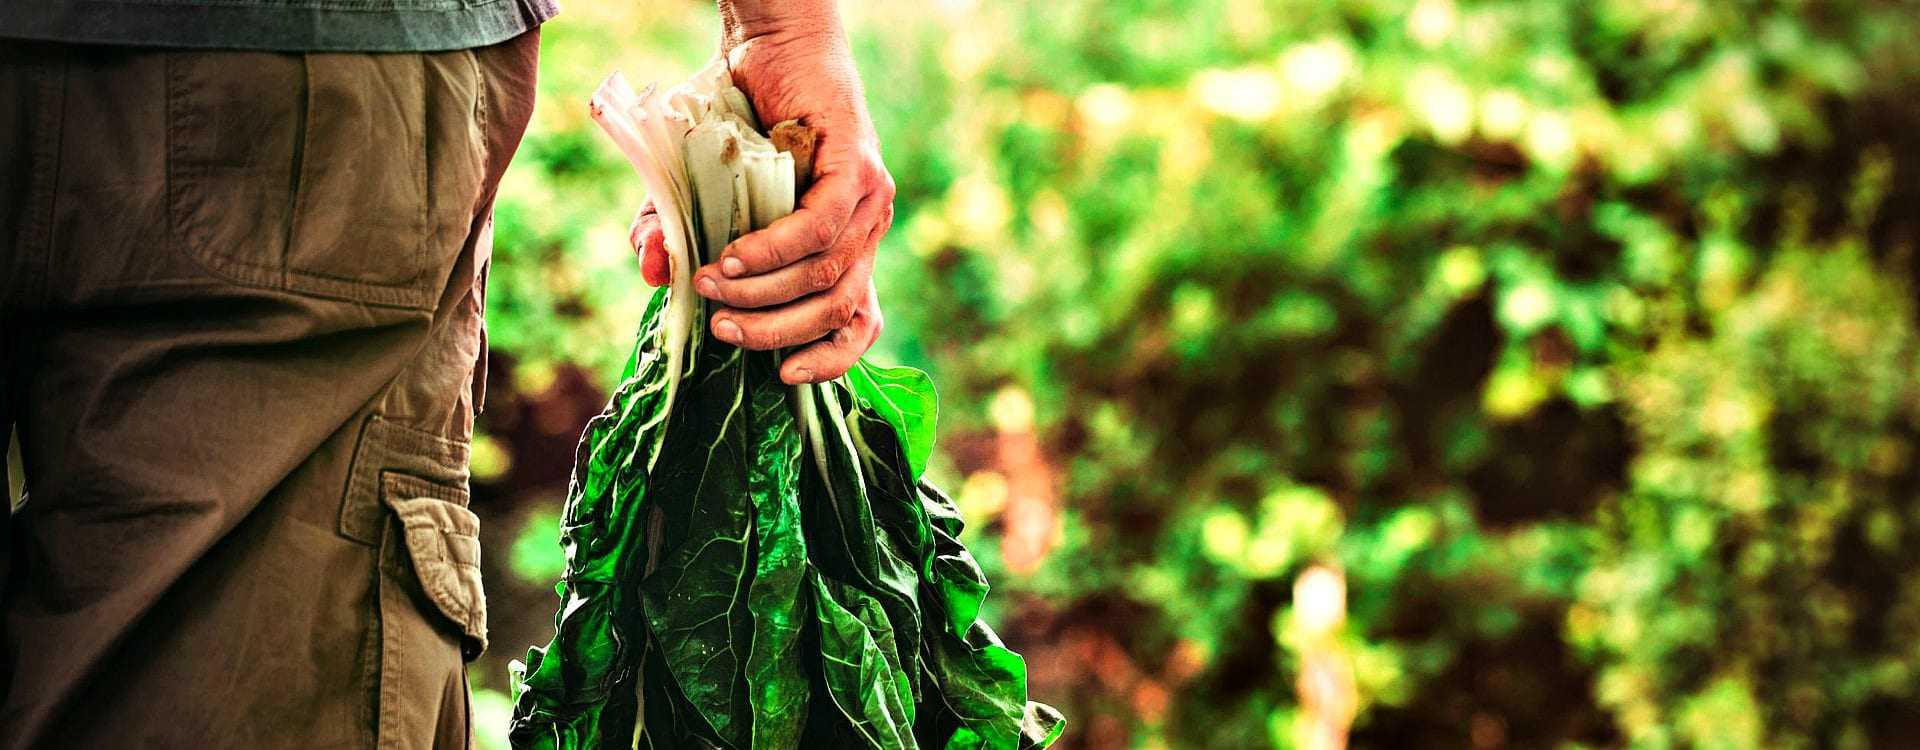 Agreement Reached on New EU Organic Food Rules